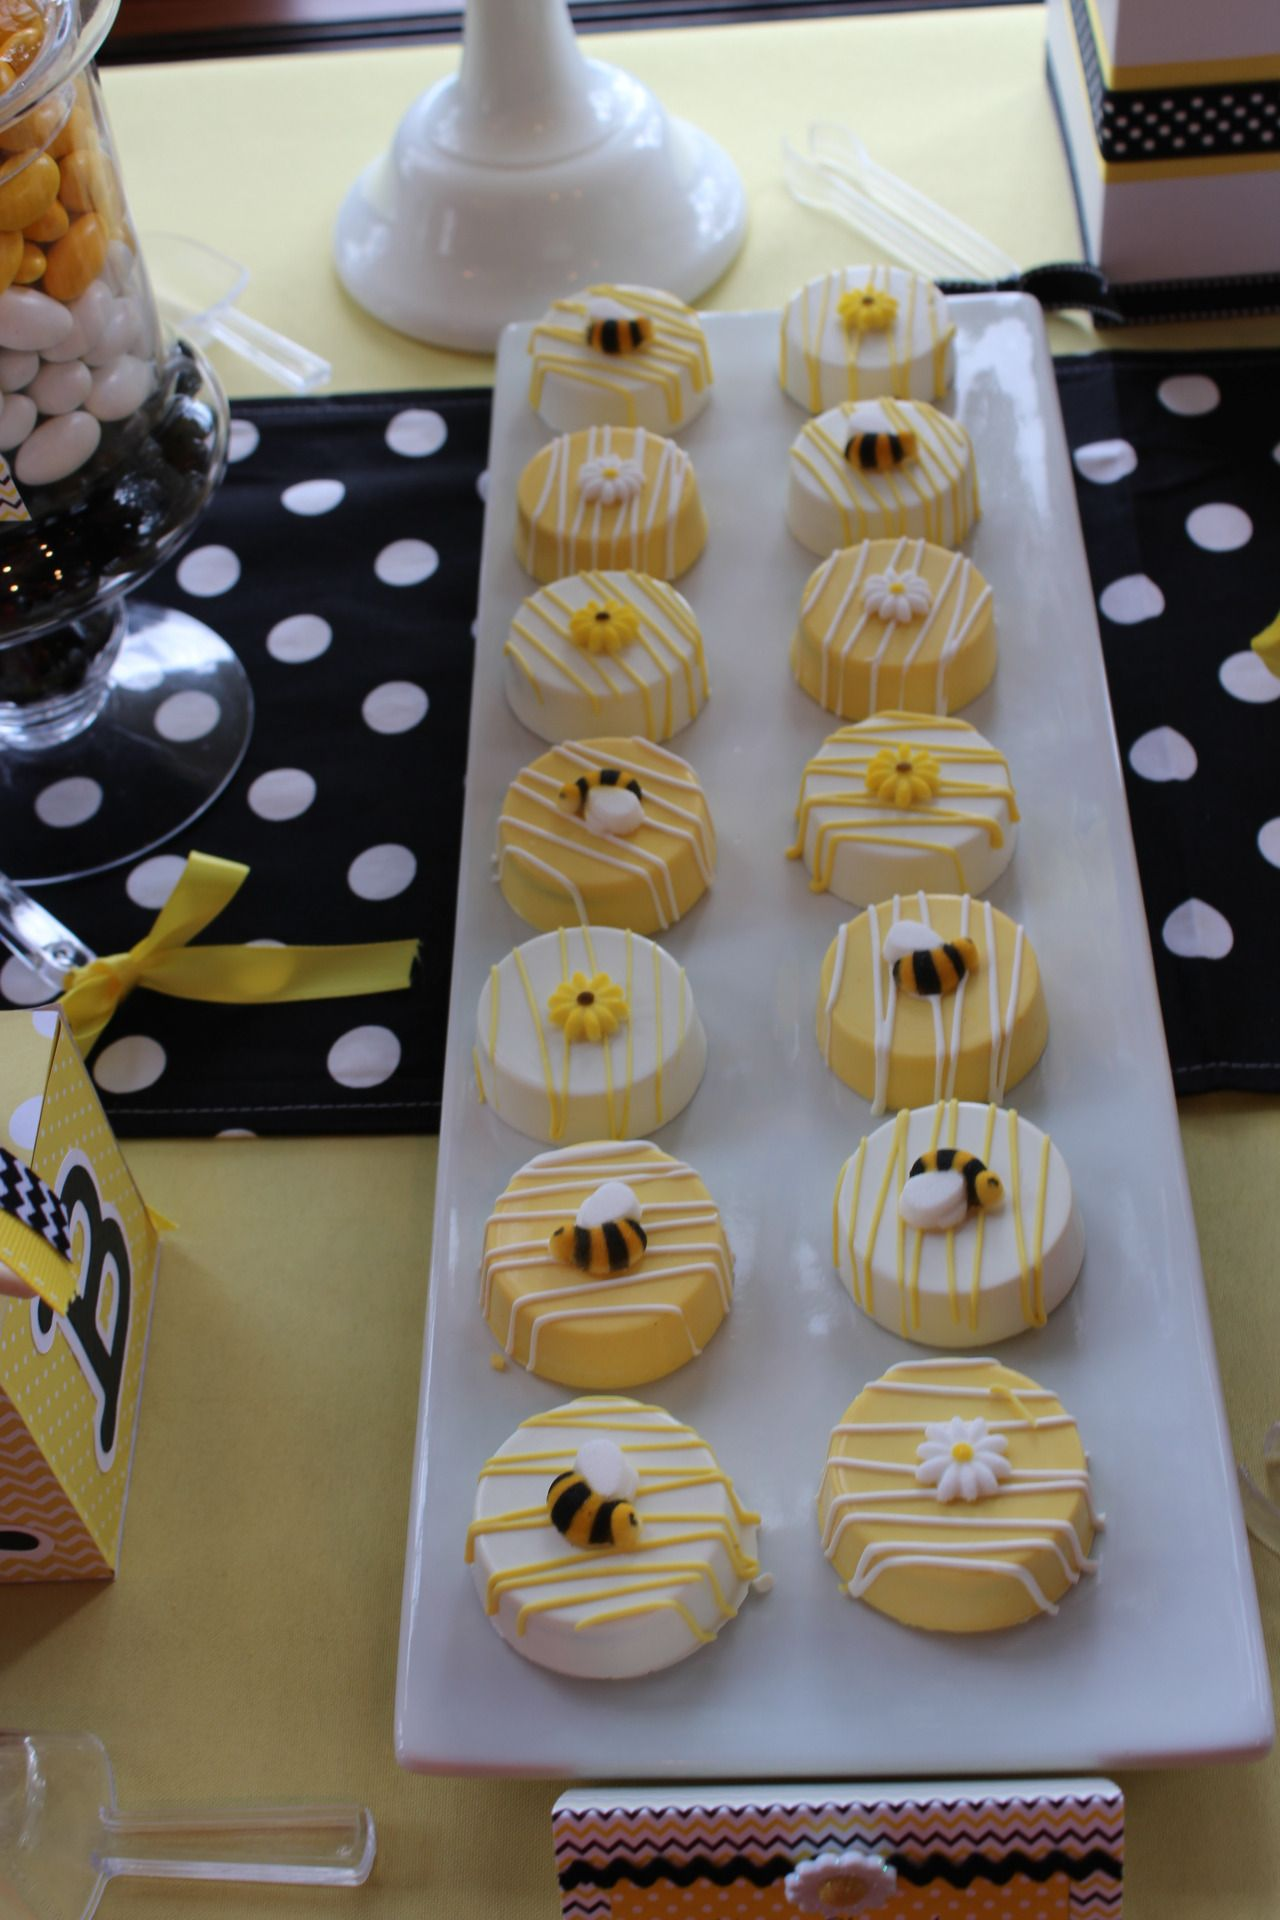 Bumblebee Themed Baby Shower (u201cMommy To Beeu201d) Dessert/Candy Table W